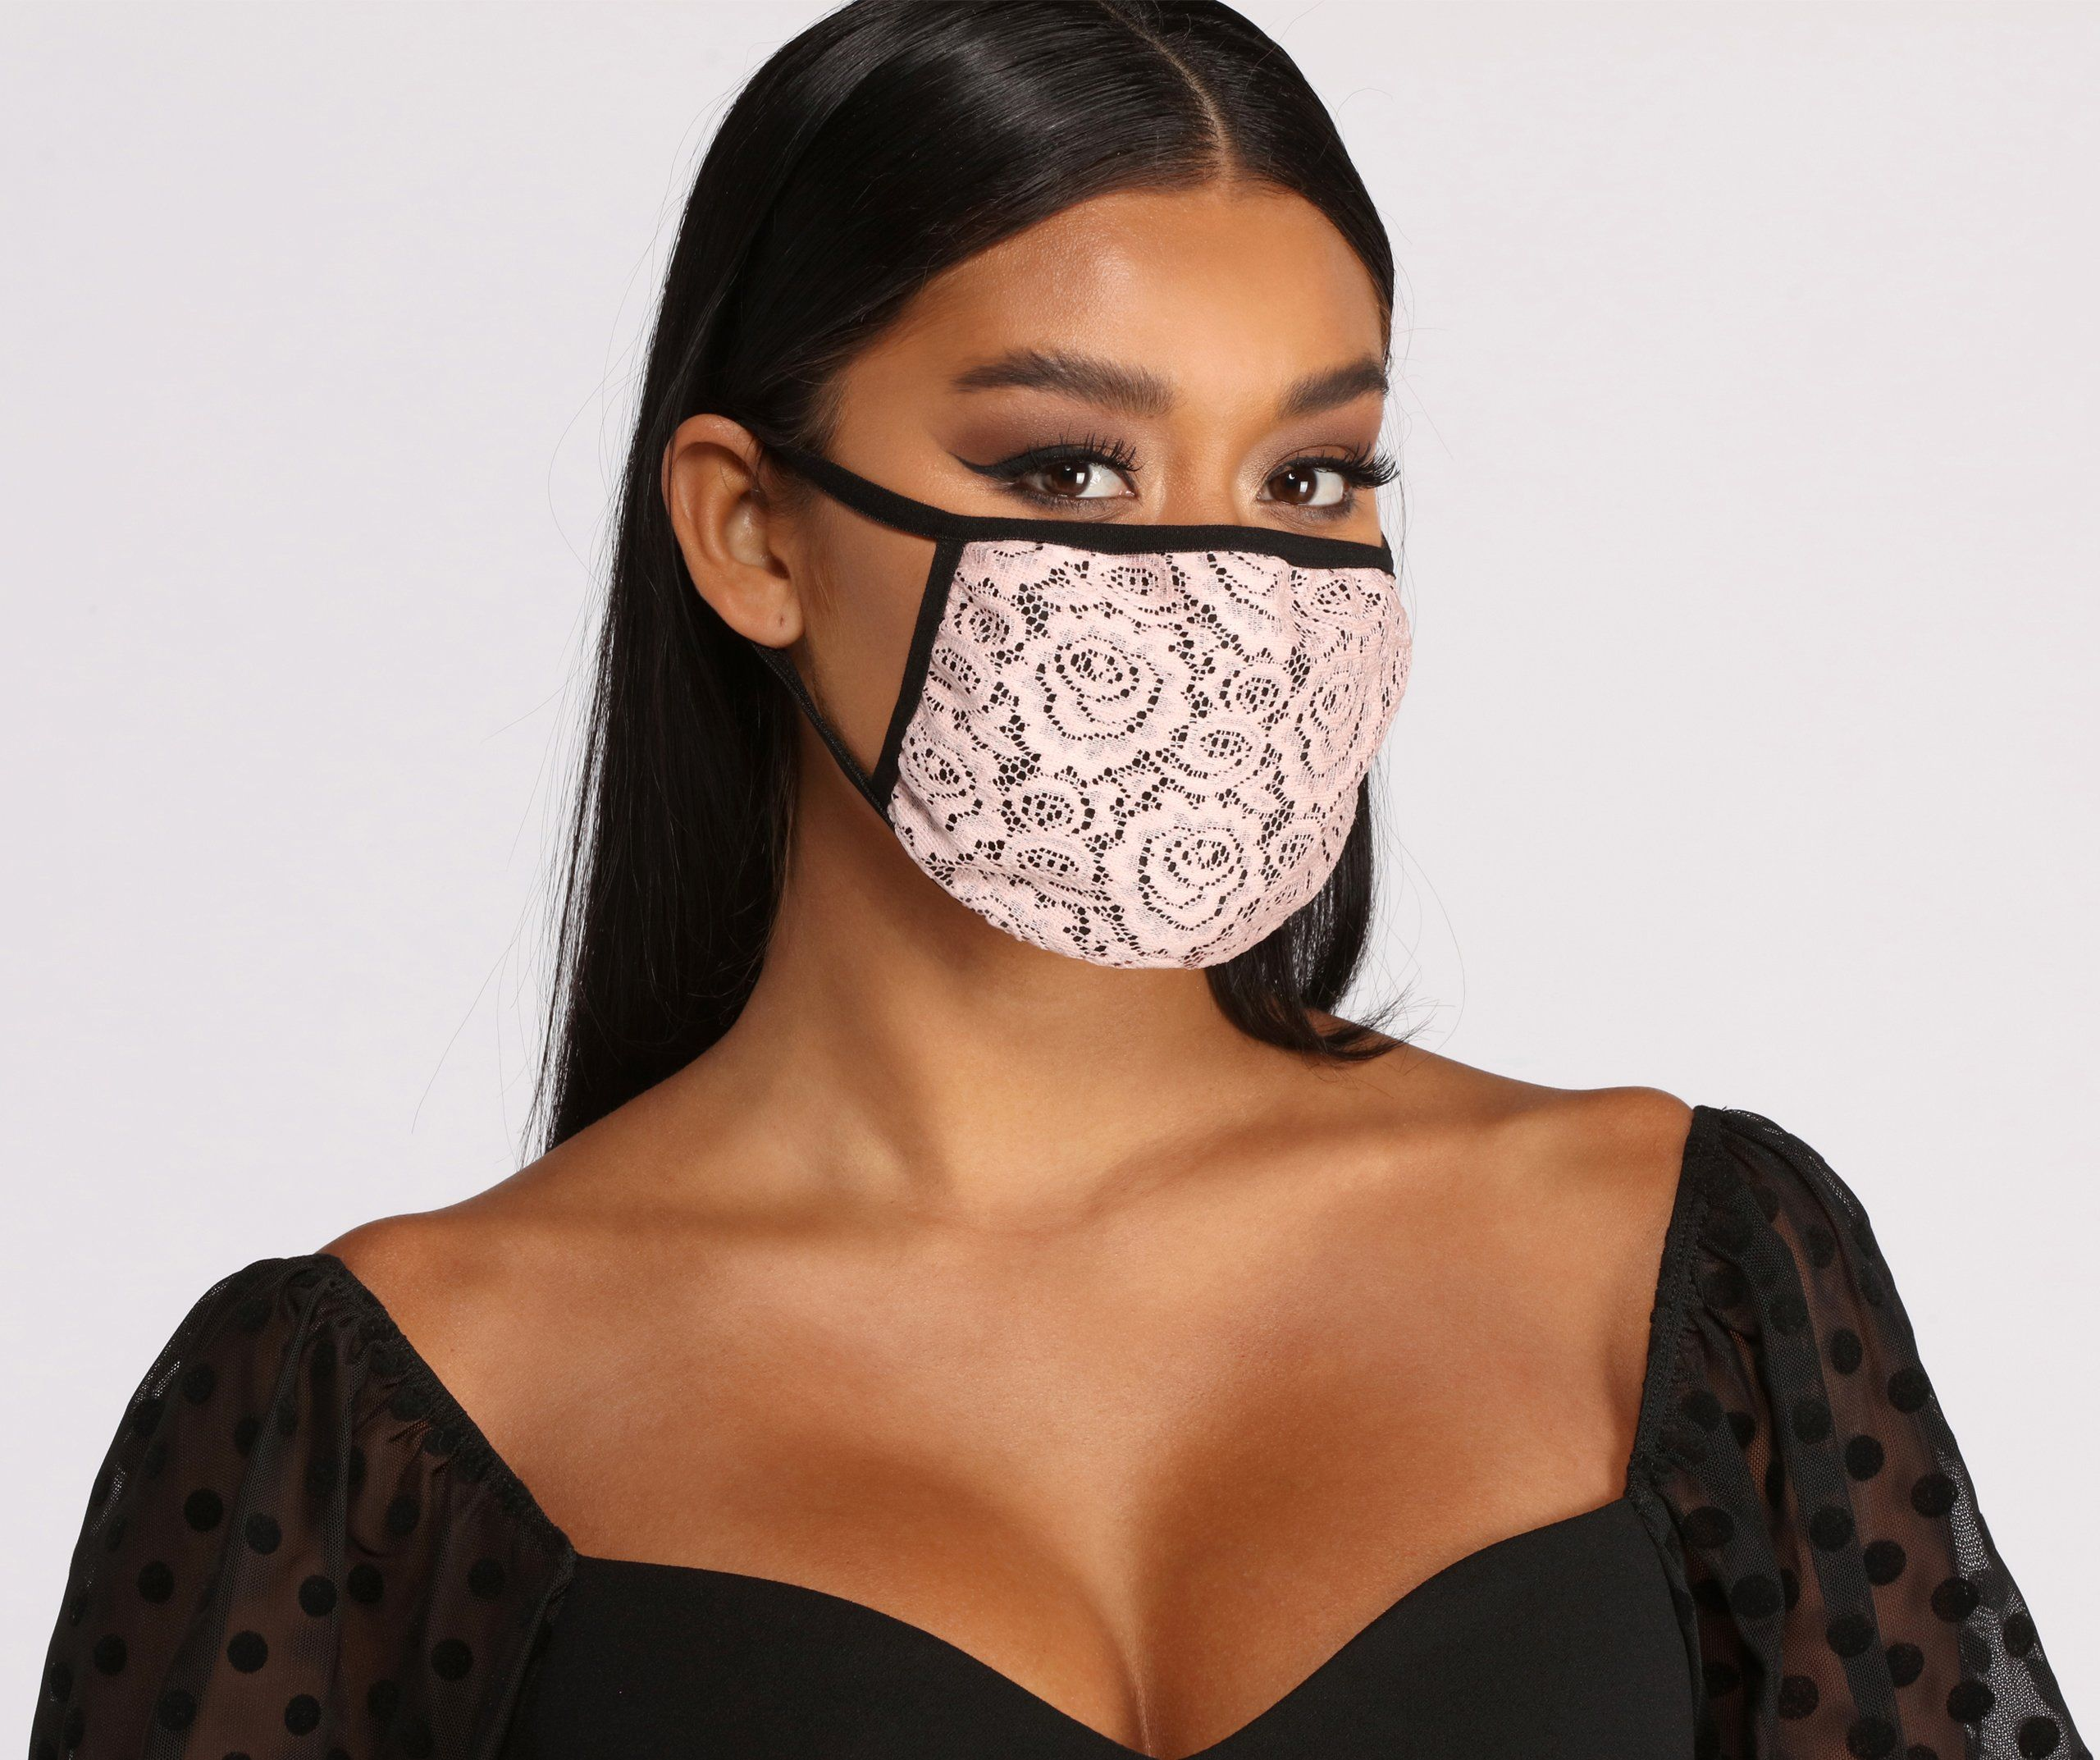 floral lace face mask with earloops in 2021 fashion face mask fashion mask